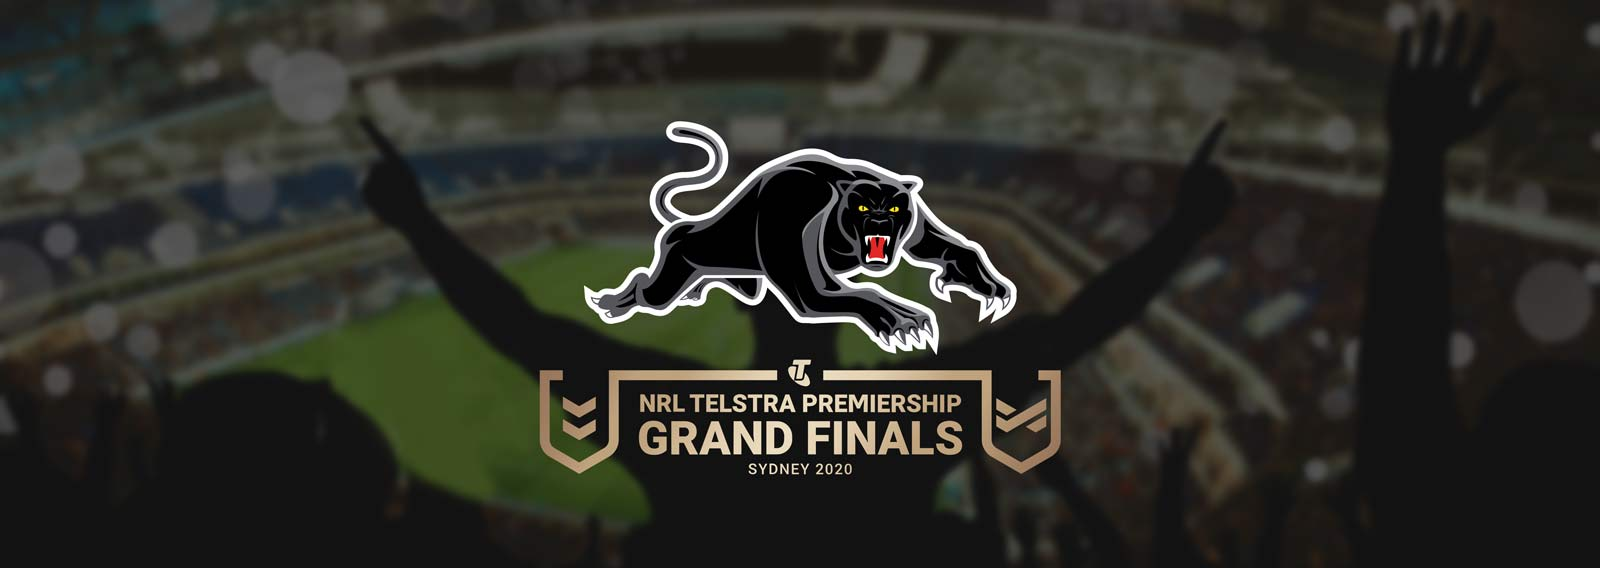 Can the panthers win the NRL grand final